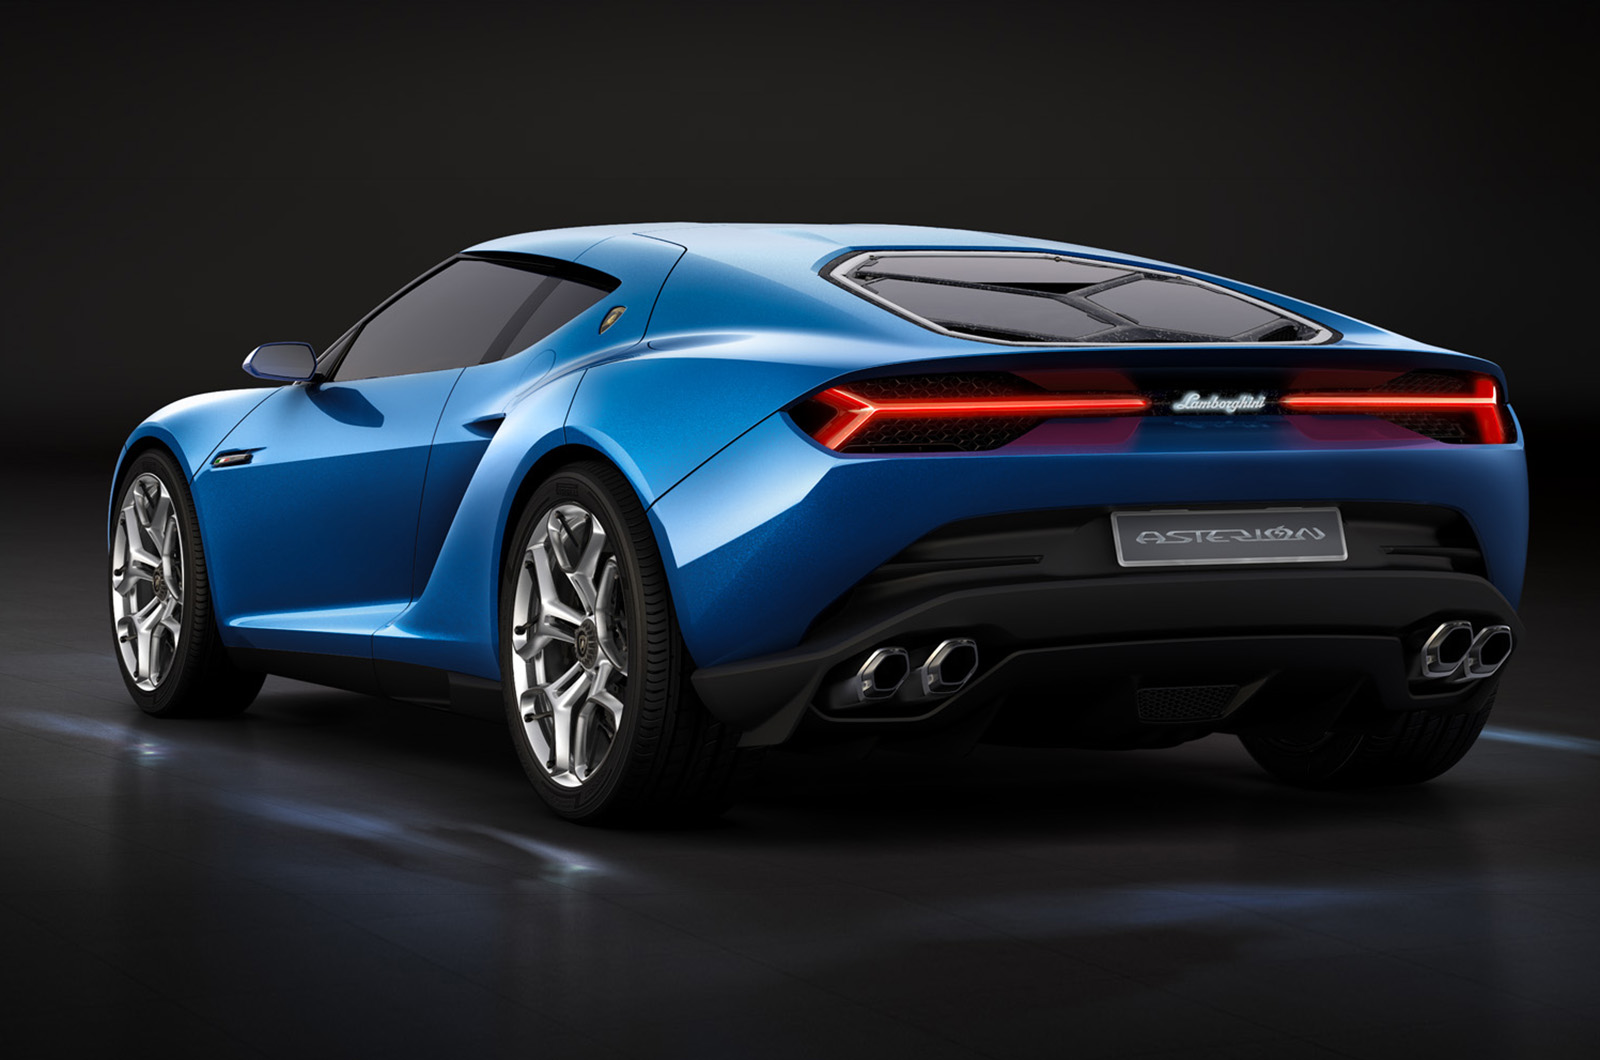 New Ford Mustang 2019 Convertible Coupe Ford Uk >> Lamborghini showcases new Asterion hybrid coupe concept | Autocar